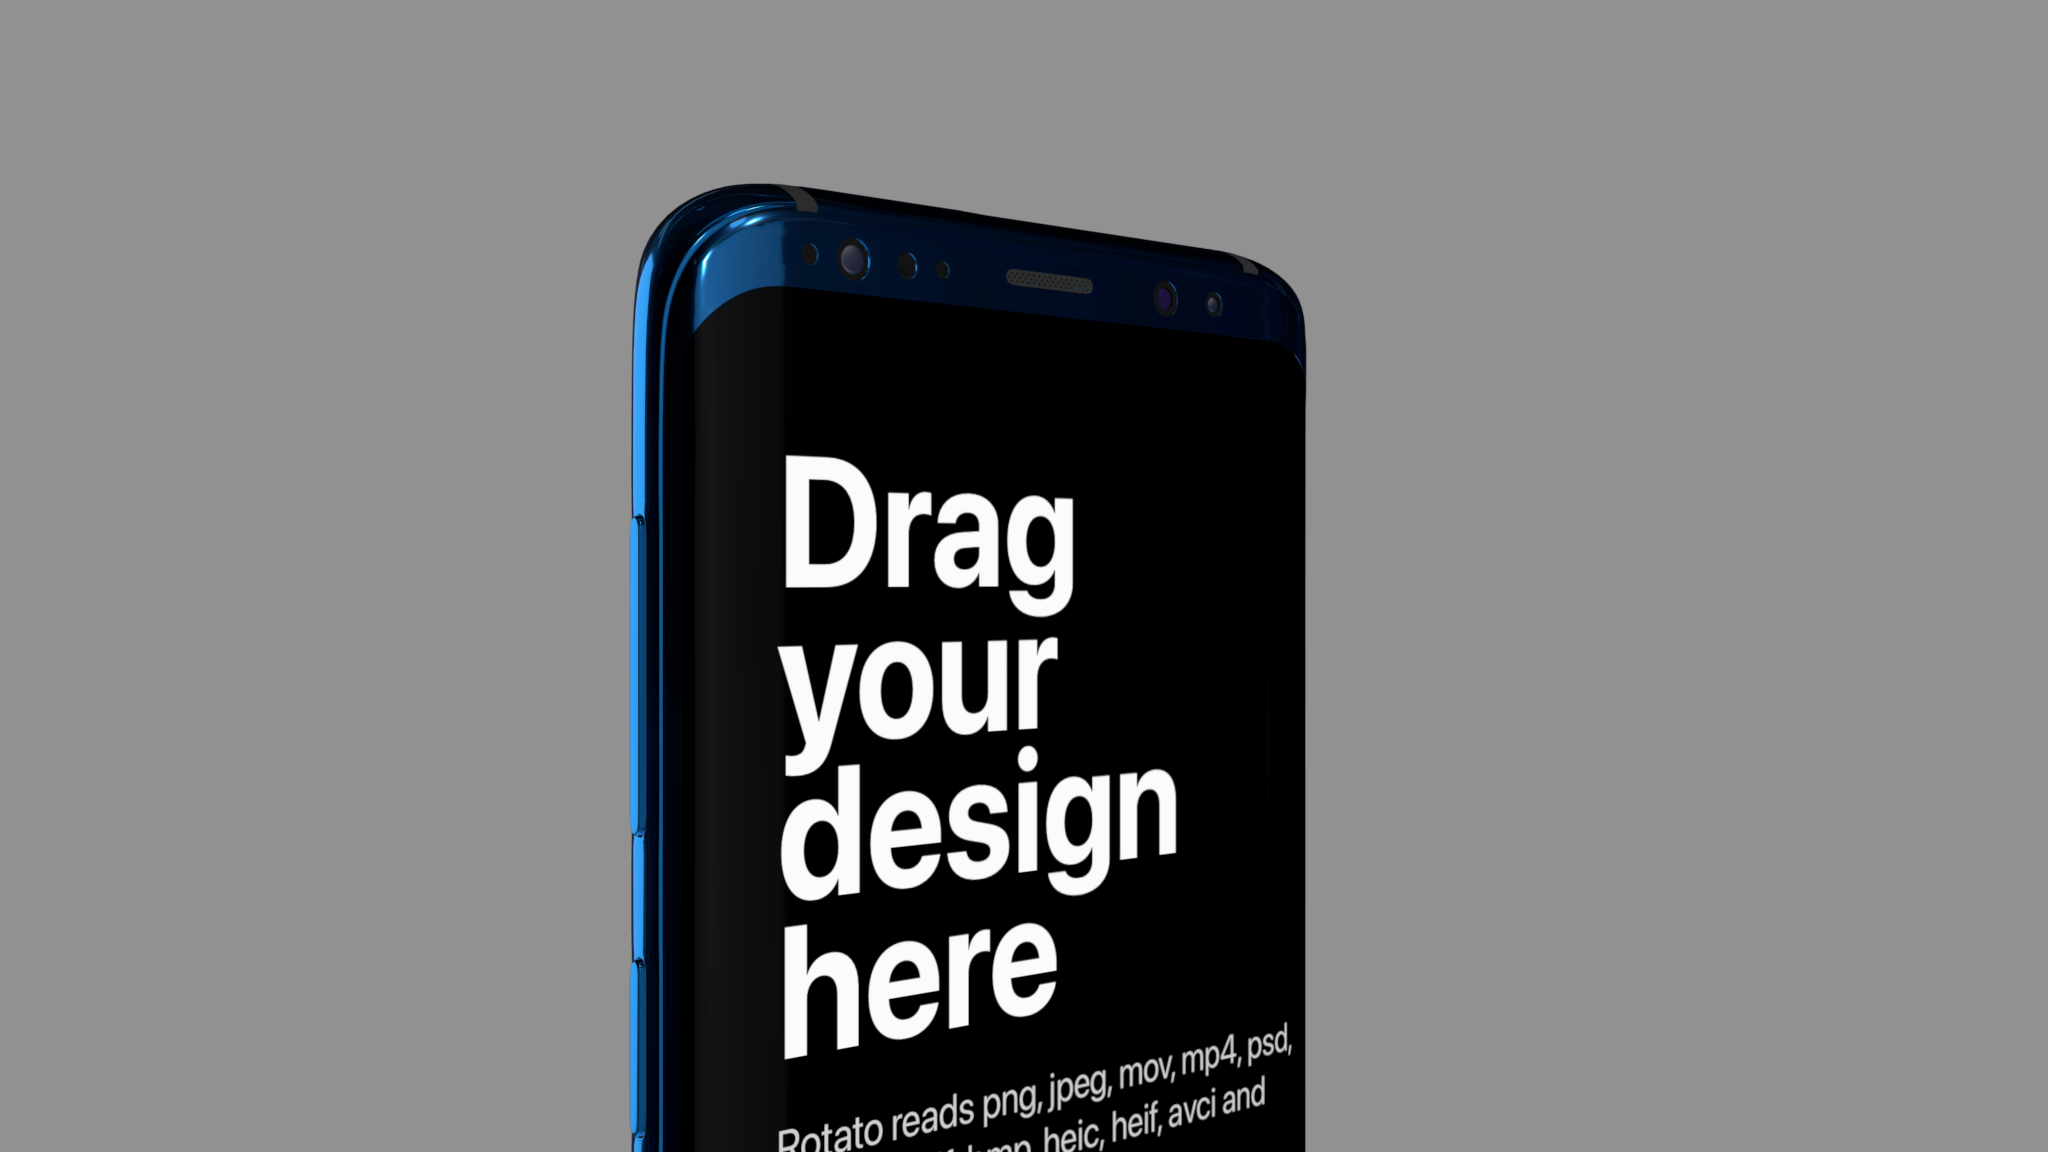 Blue colored Android mockup rotated, showing top part of scren